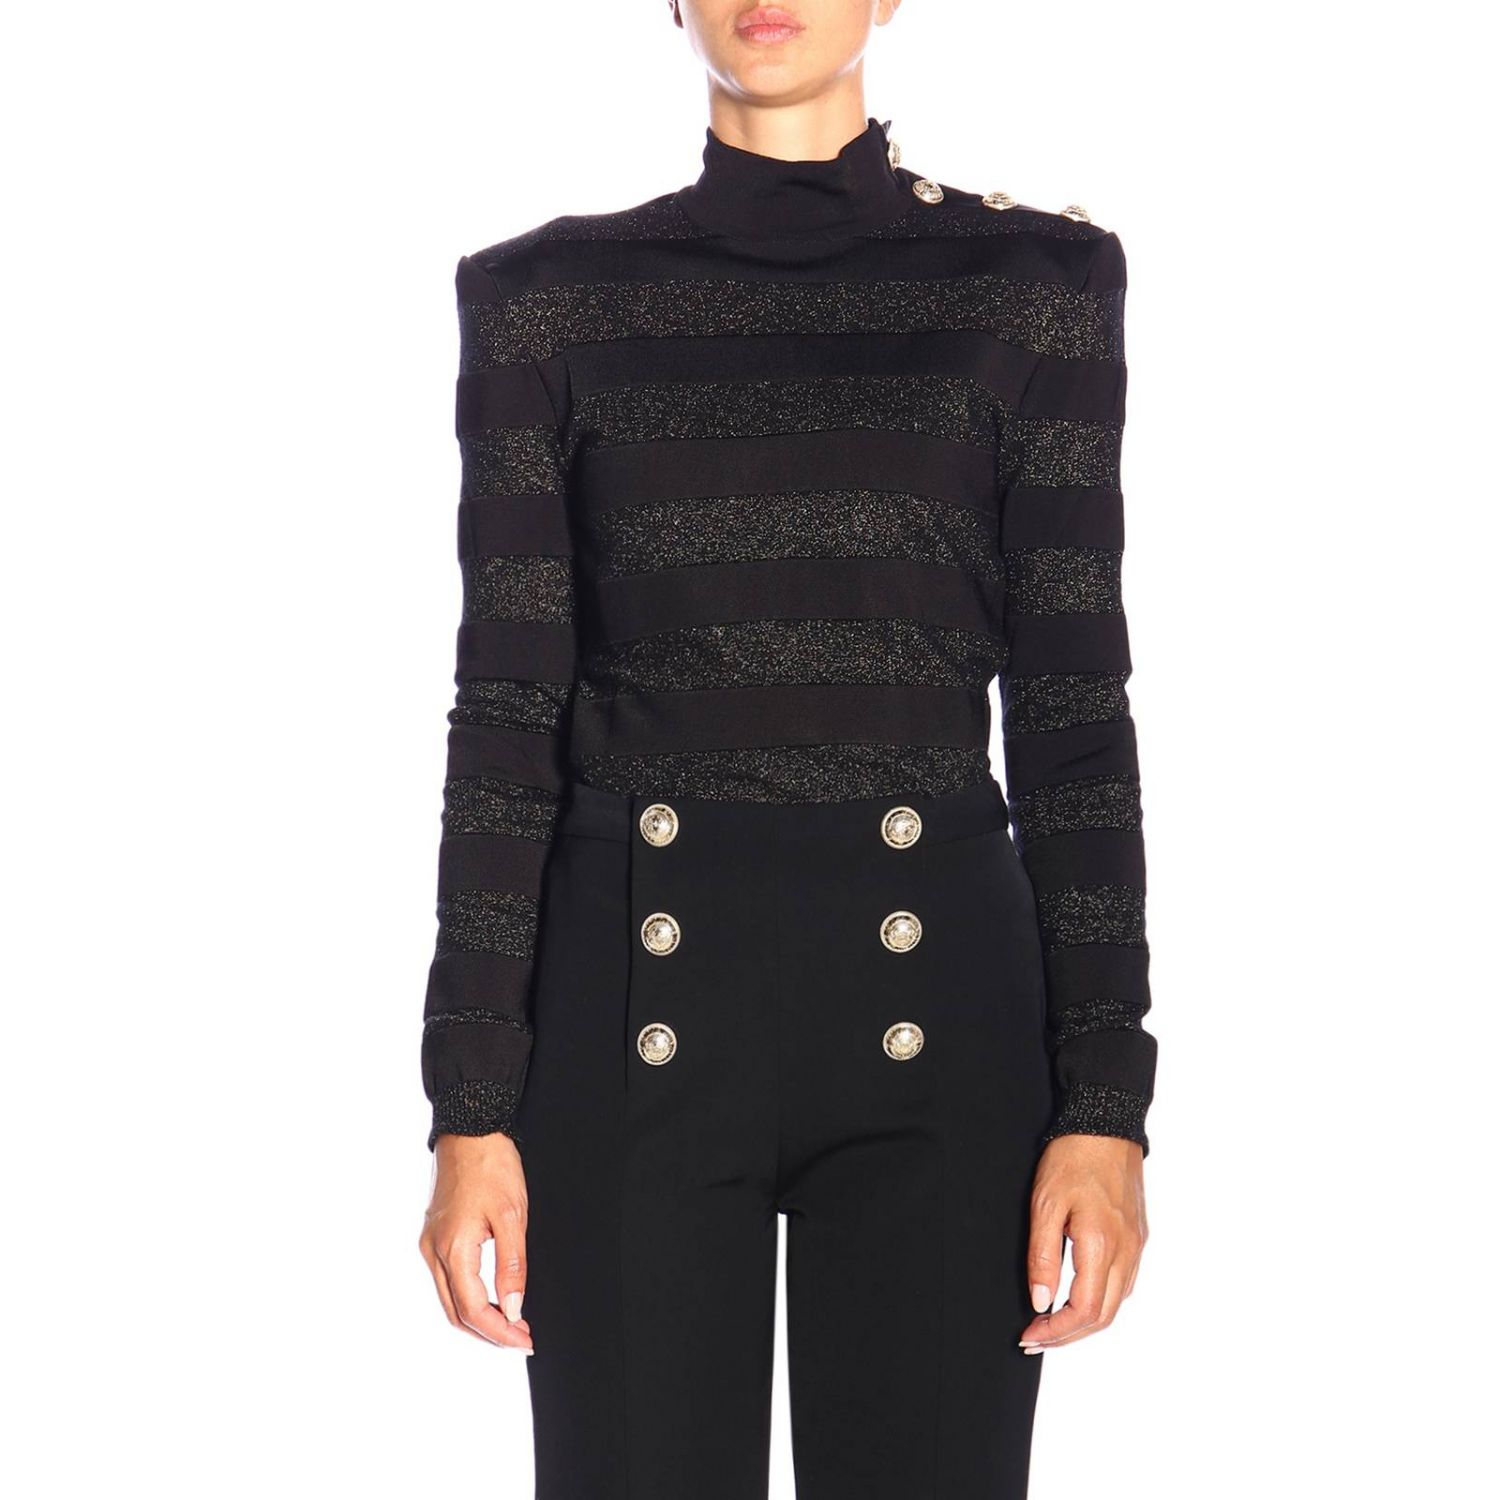 Jumper Balmain: Balmain turtleneck sweater with lurex bands and jewel buttons black 1